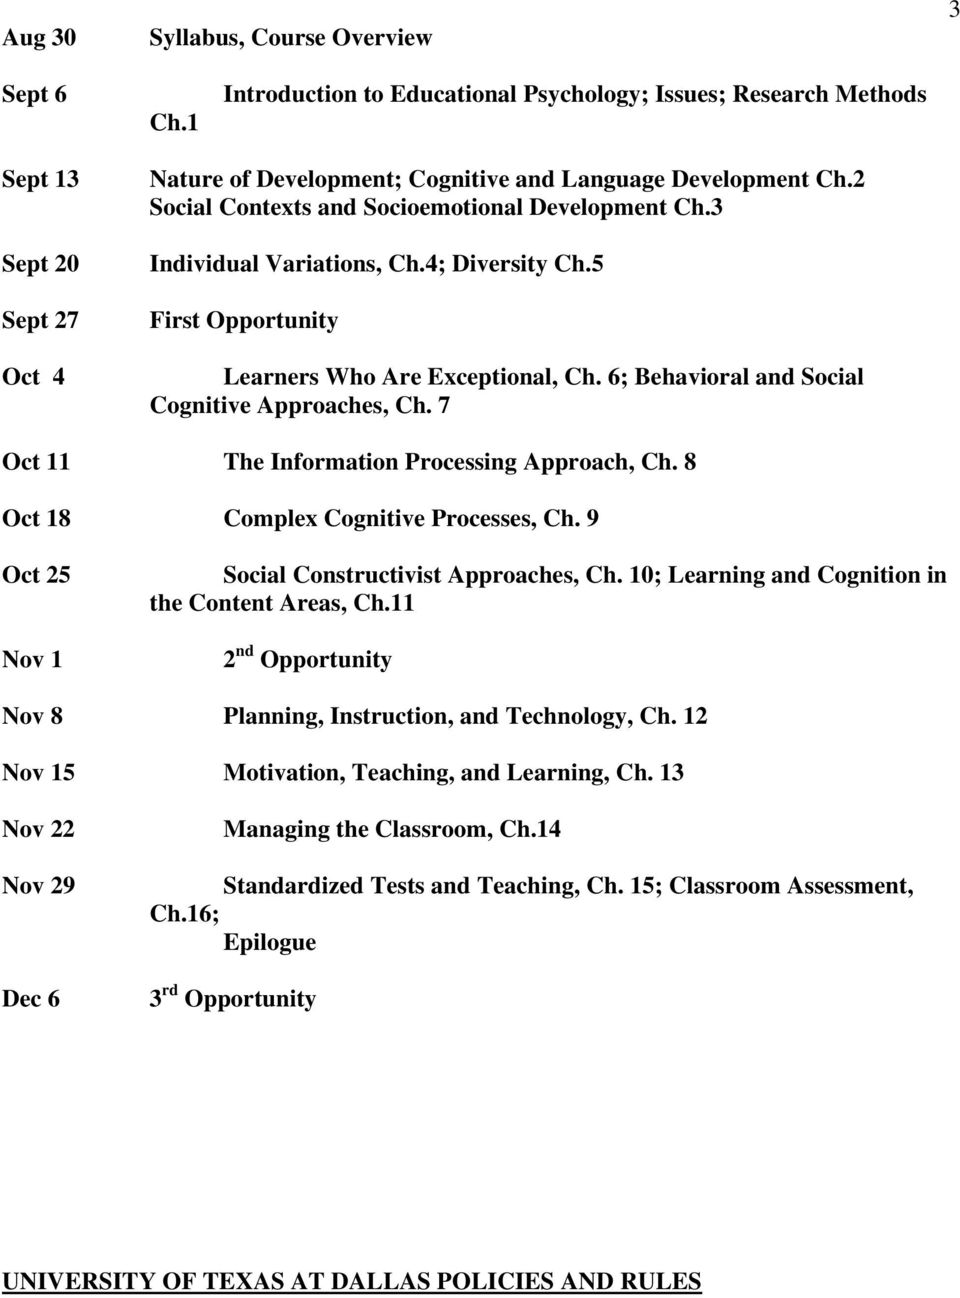 2 Social Contexts and Socioemotional Development Ch.3 Individual Variations, Ch.4; Diversity Ch.5 First Opportunity Learners Who Are Exceptional, Ch. 6; Behavioral and Social Cognitive Approaches, Ch.